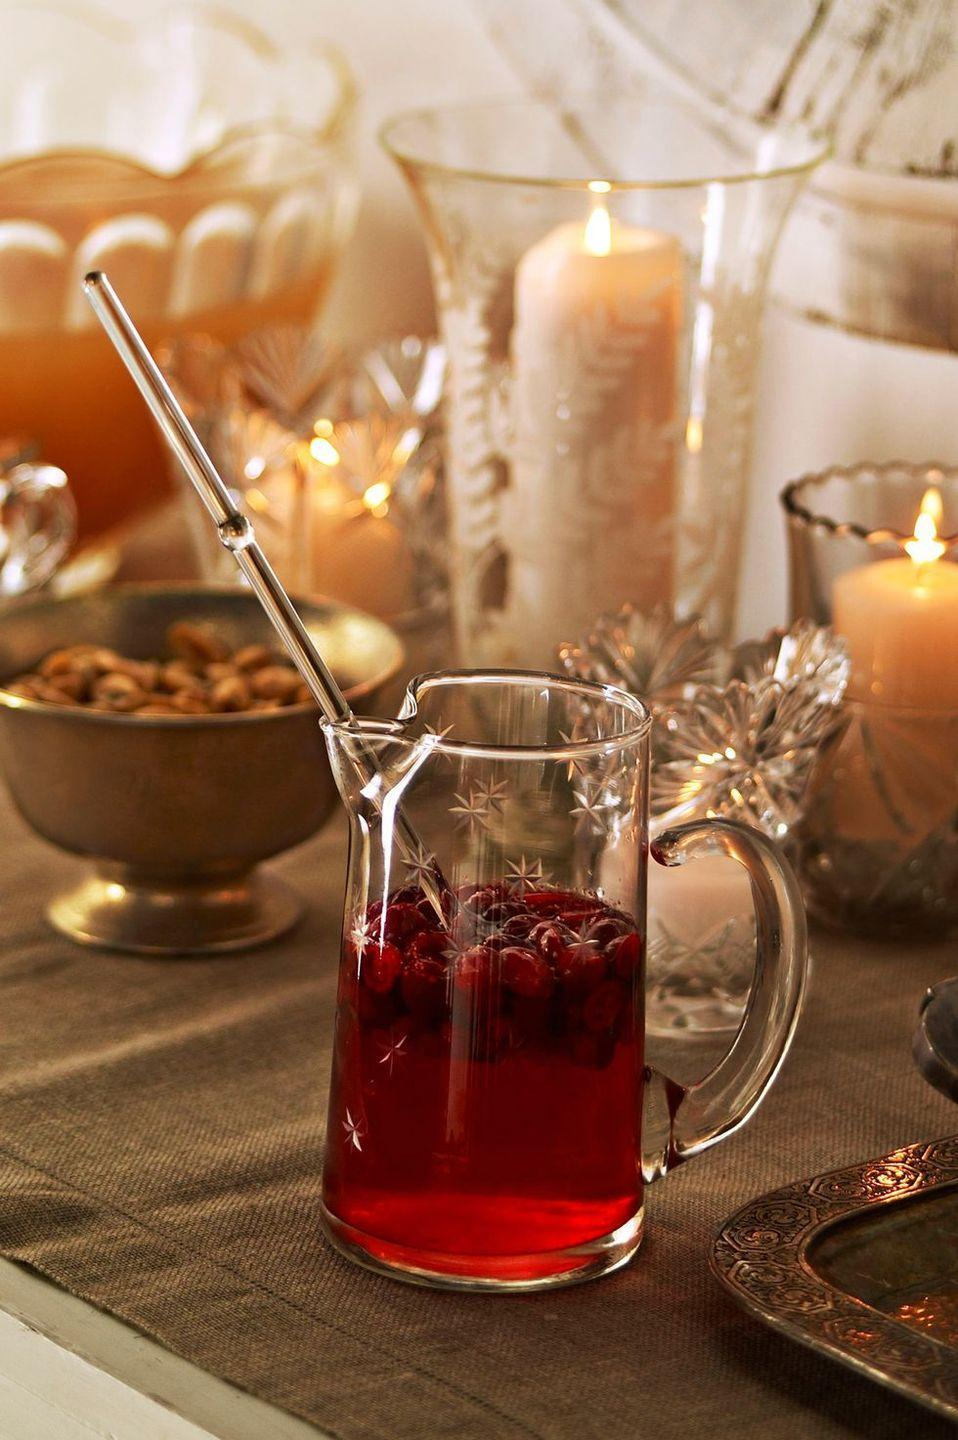 """<p>If warm apple cider just isn't enough, it's time for a batch of warm bourbon cider. It's basically you're typical apple cider recipe, but with a dash of bourbon. </p><p><a href=""""https://www.countryliving.com/food-drinks/recipes/a3290/warm-bourbon-cider-recipe/"""" rel=""""nofollow noopener"""" target=""""_blank"""" data-ylk=""""slk:Get the recipe from Country Living »"""" class=""""link rapid-noclick-resp""""><em>Get the recipe from Country Living »</em></a></p>"""